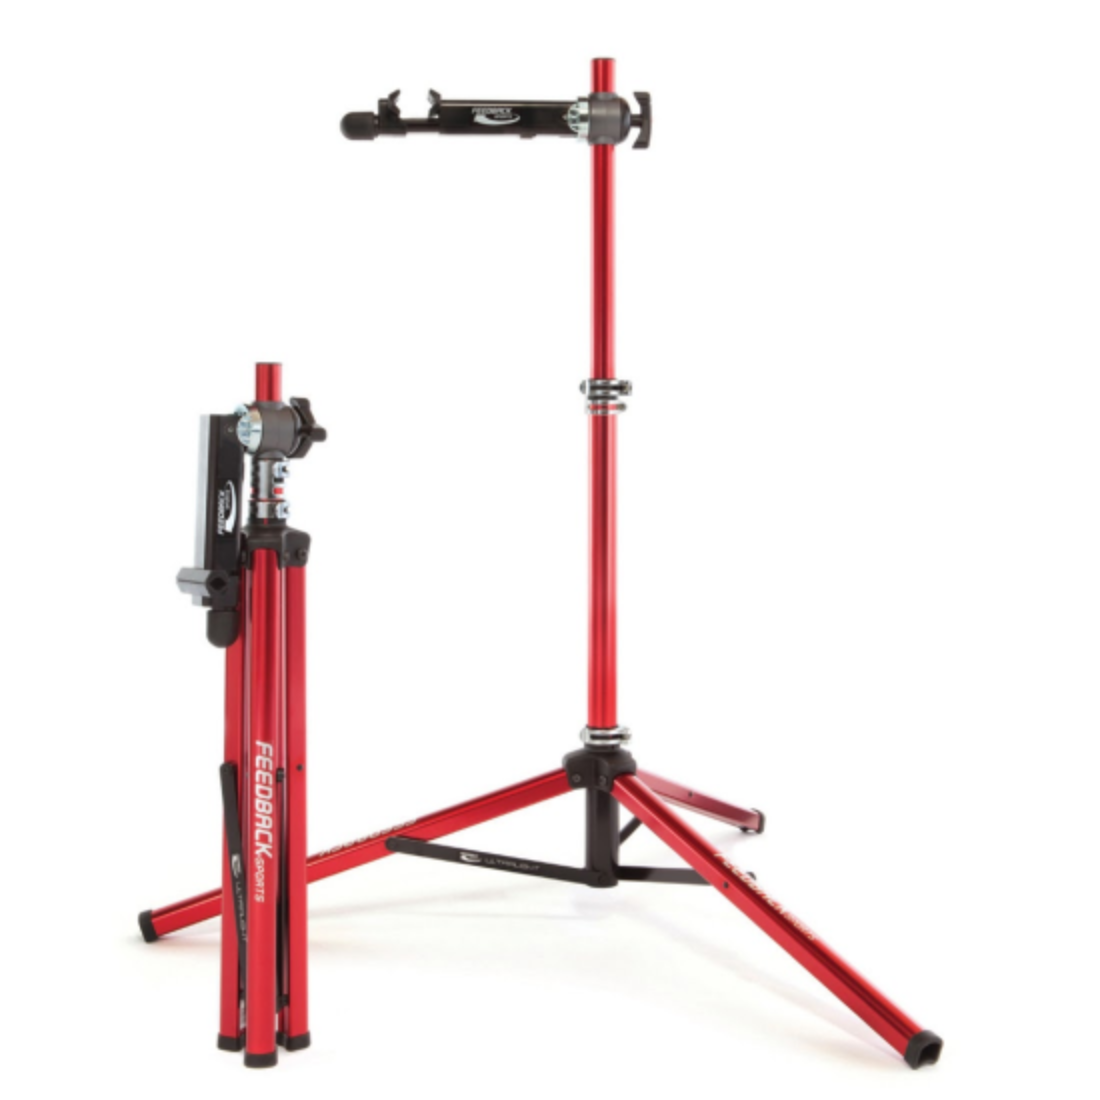 Ultralight repair stand